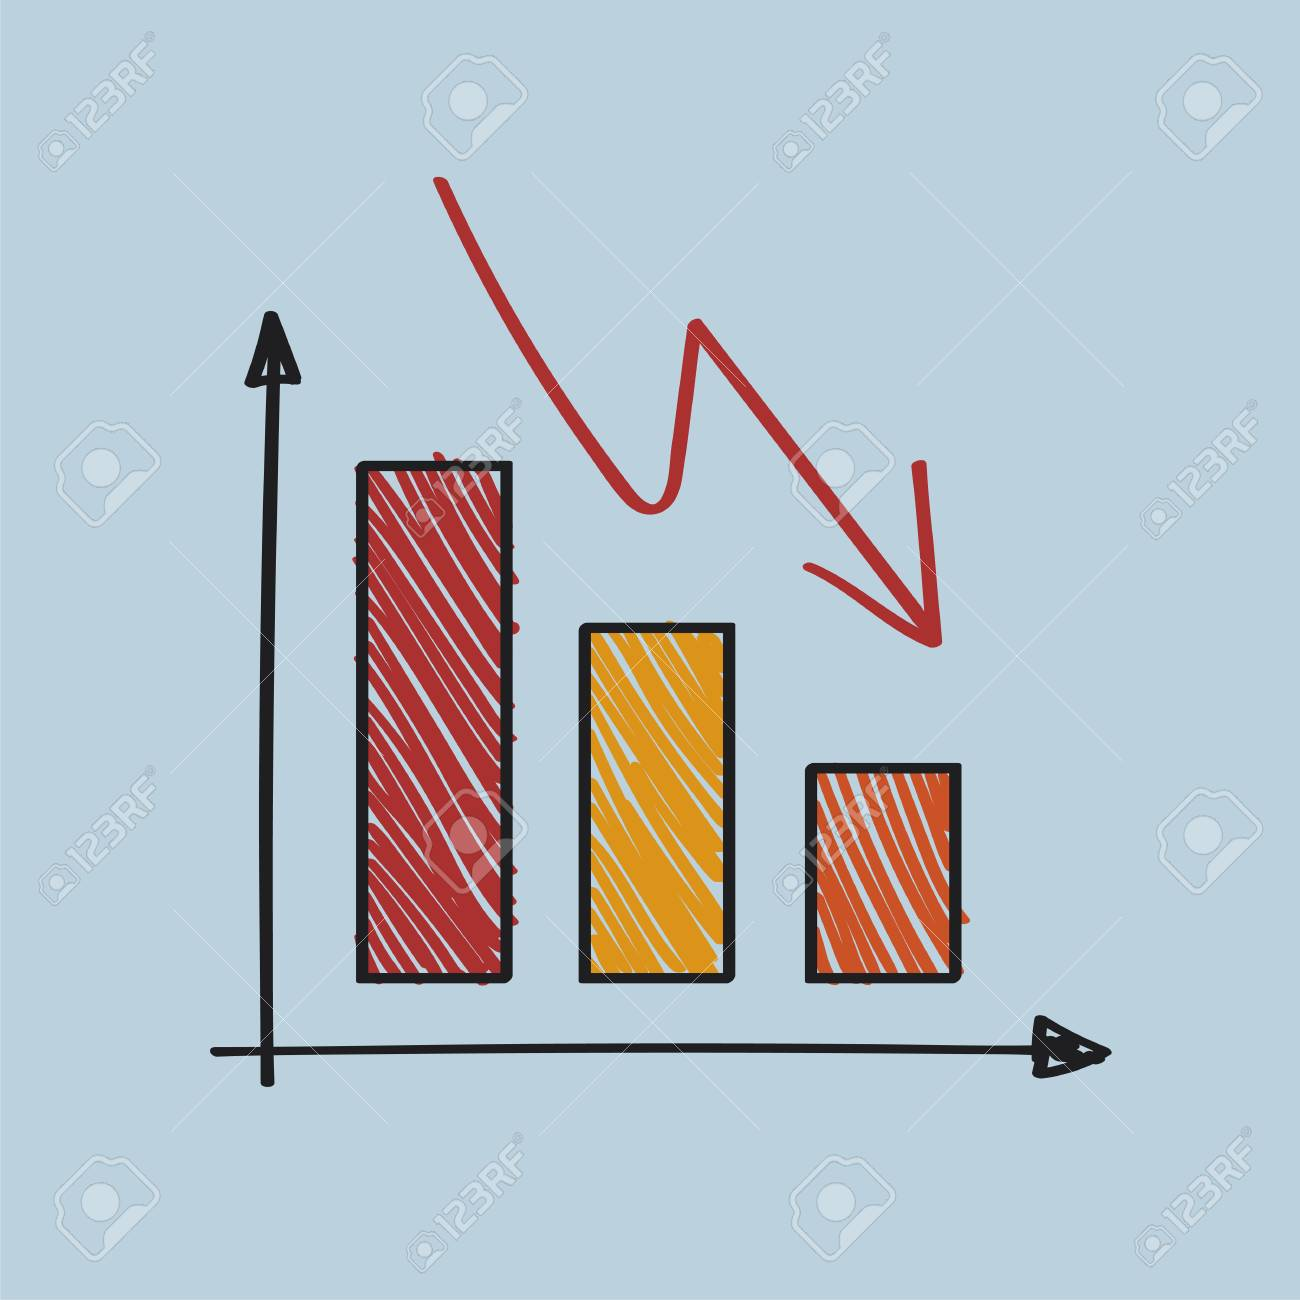 Negatively declining and failing graph illustration - 126213264